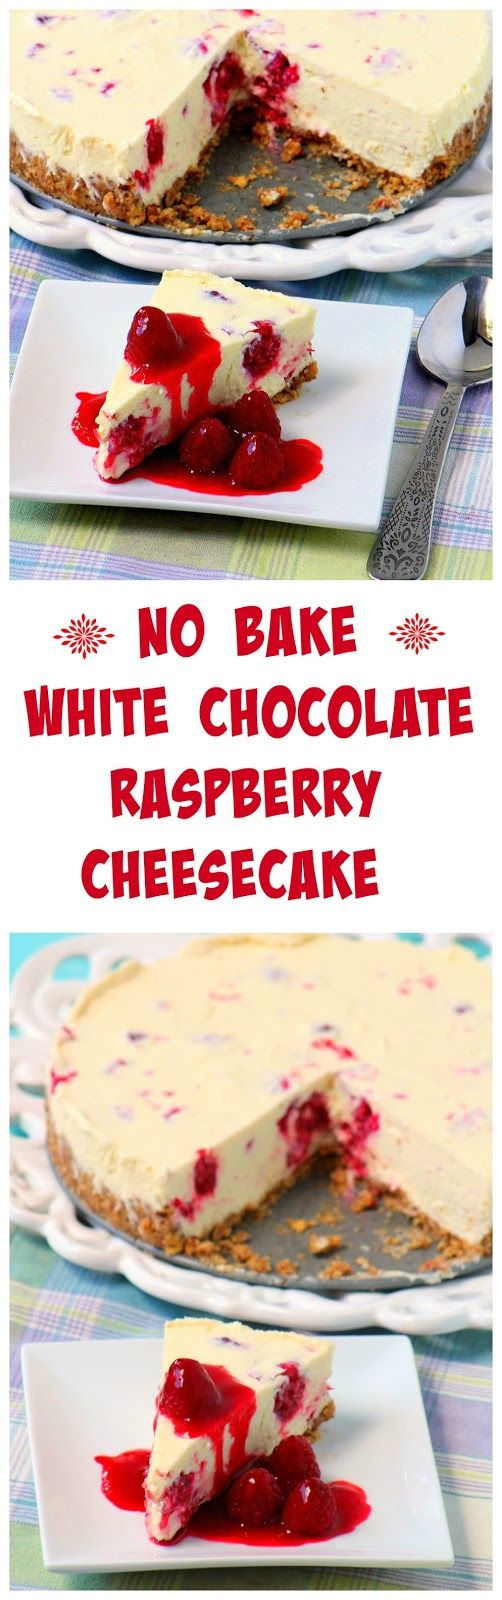 This luscious NO BAKE White Chocolate Raspberry Cheesecake is the ultimate dessert.